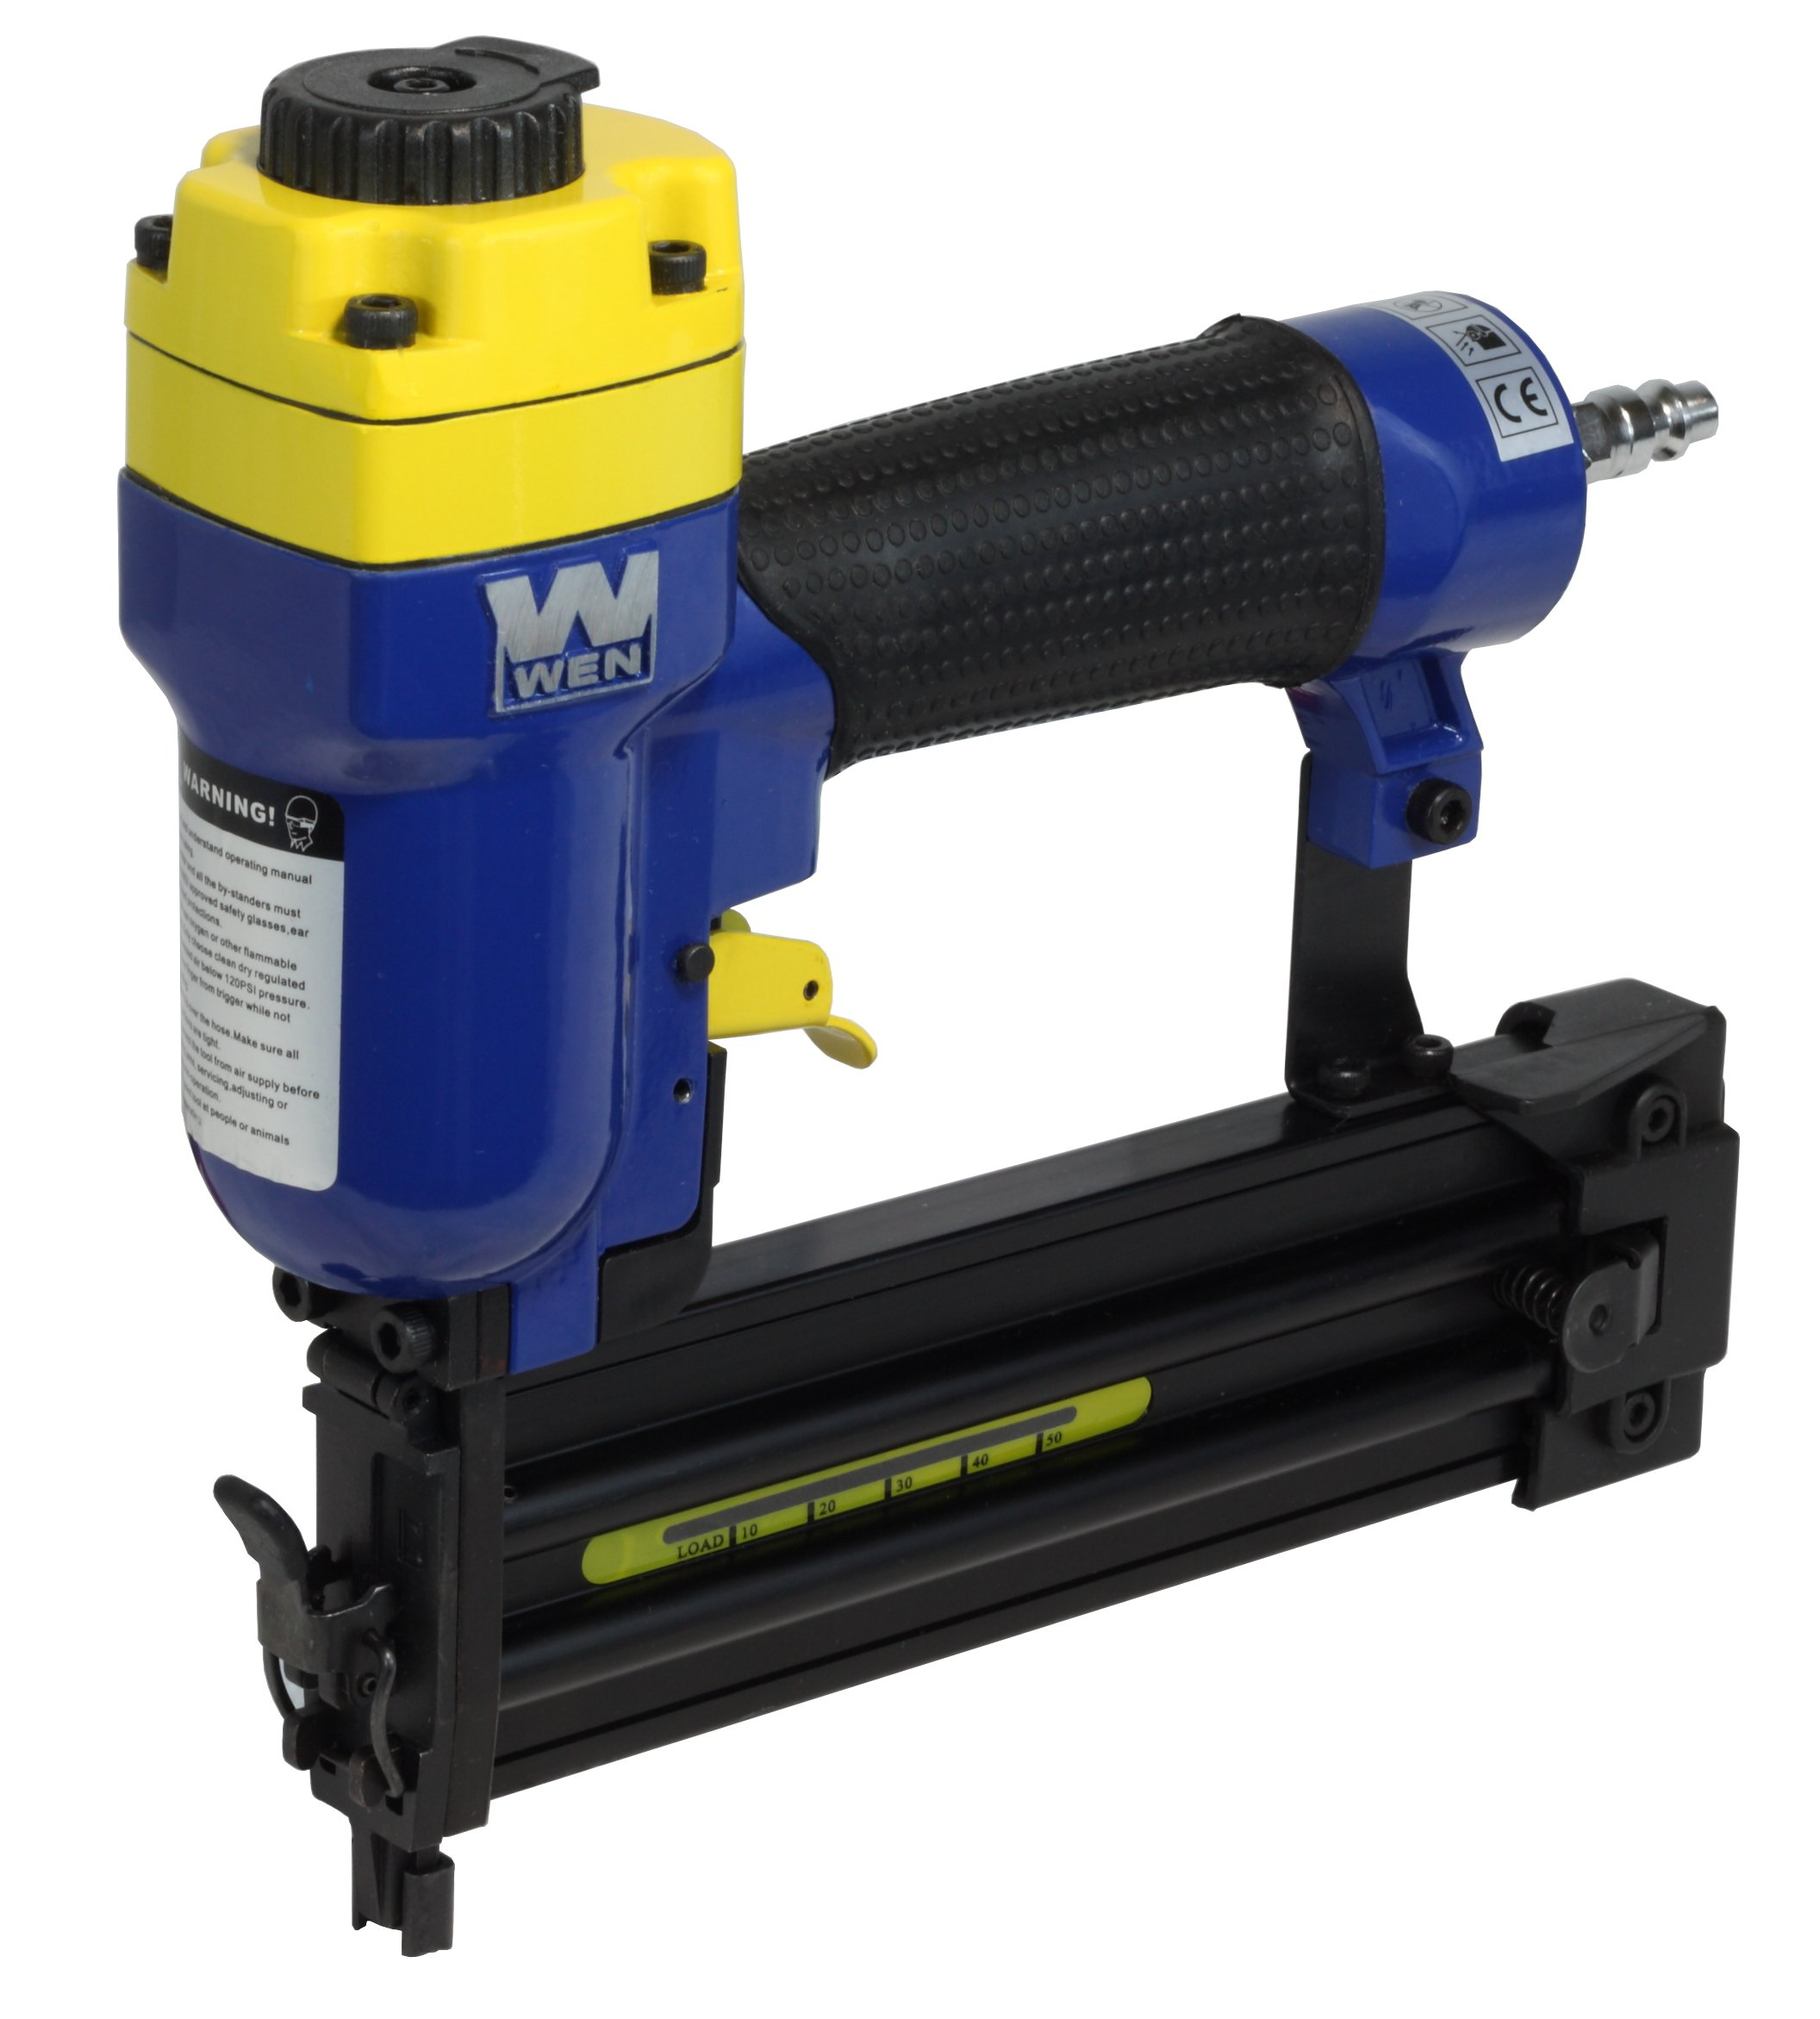 WEN 61720 3/4-Inch to 2-Inch 18-Gauge Brad Nailer by WEN